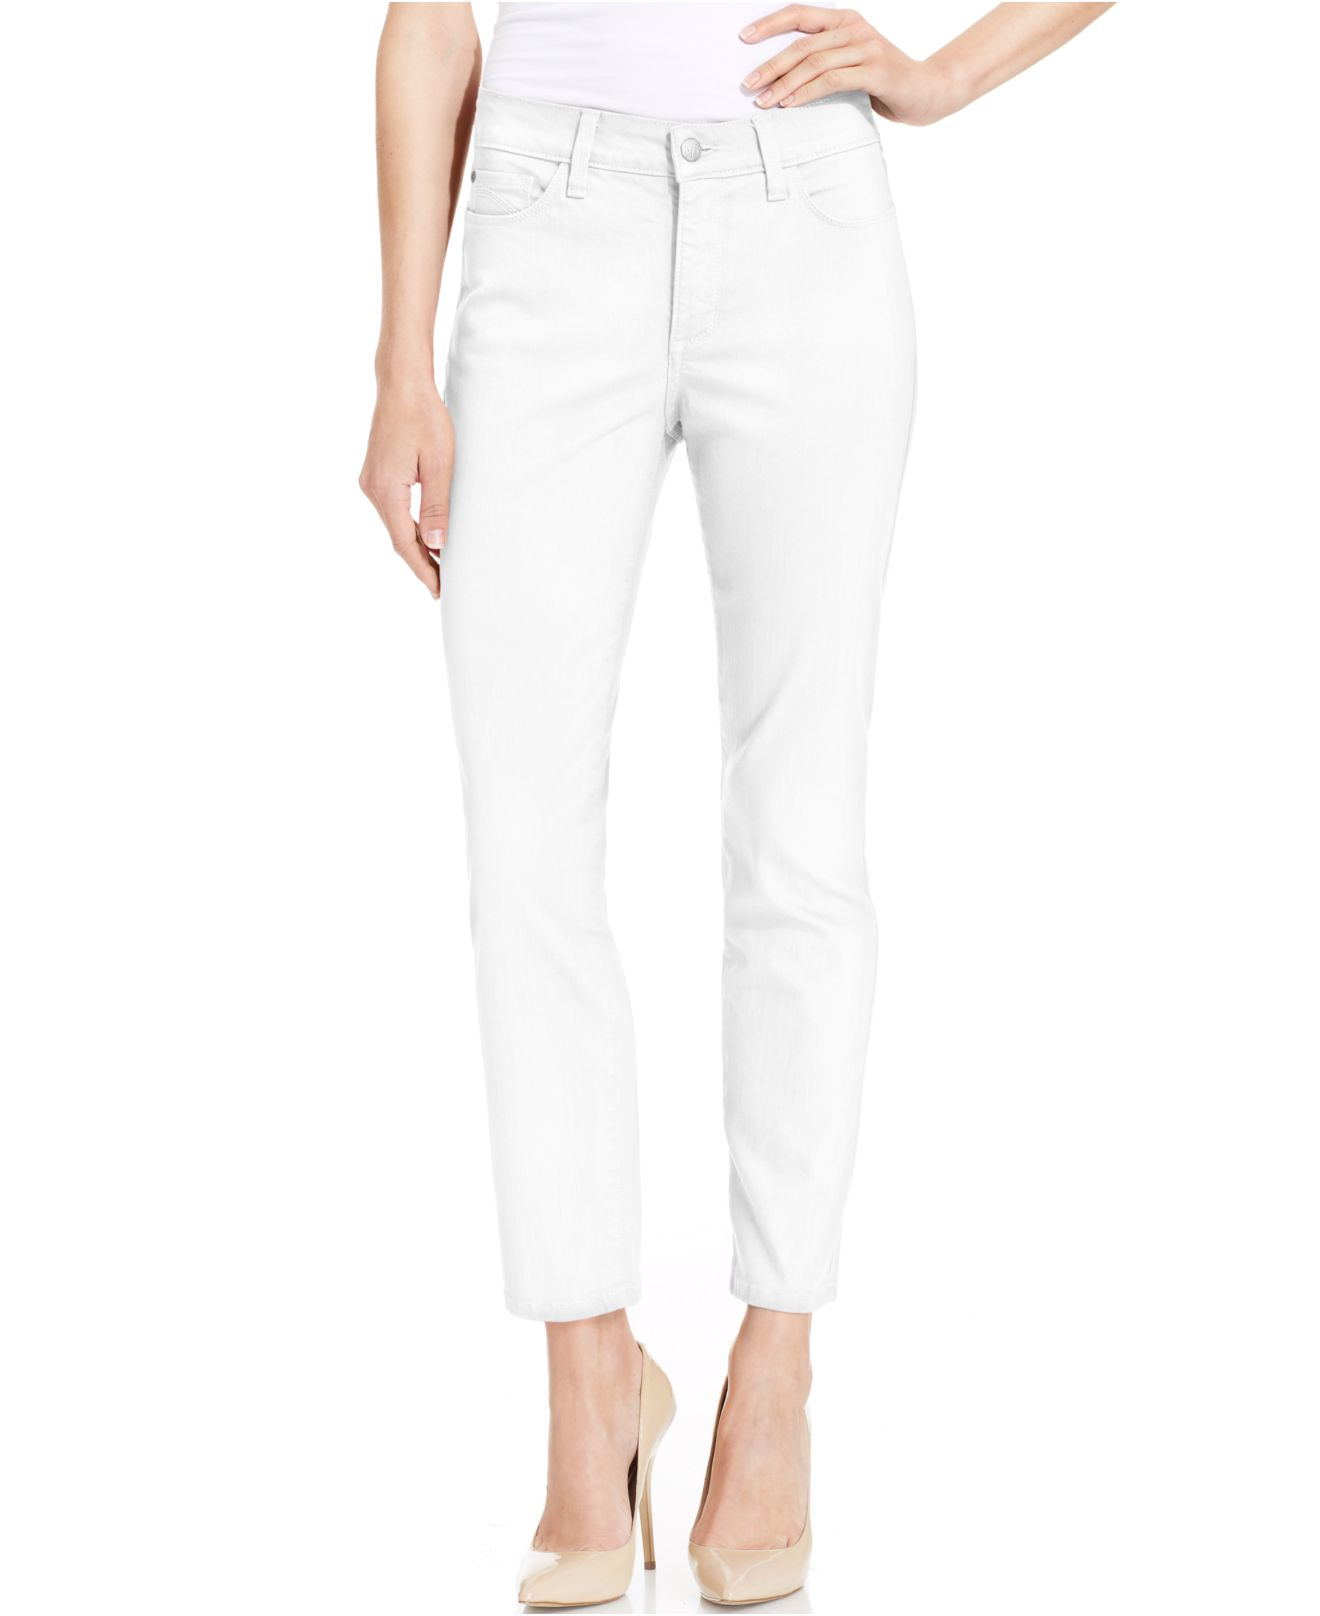 Free shipping on petite jeans for women at humorrmundiall.ga Shop for petite-size jeans from the best brands. Totally free shipping and returns.